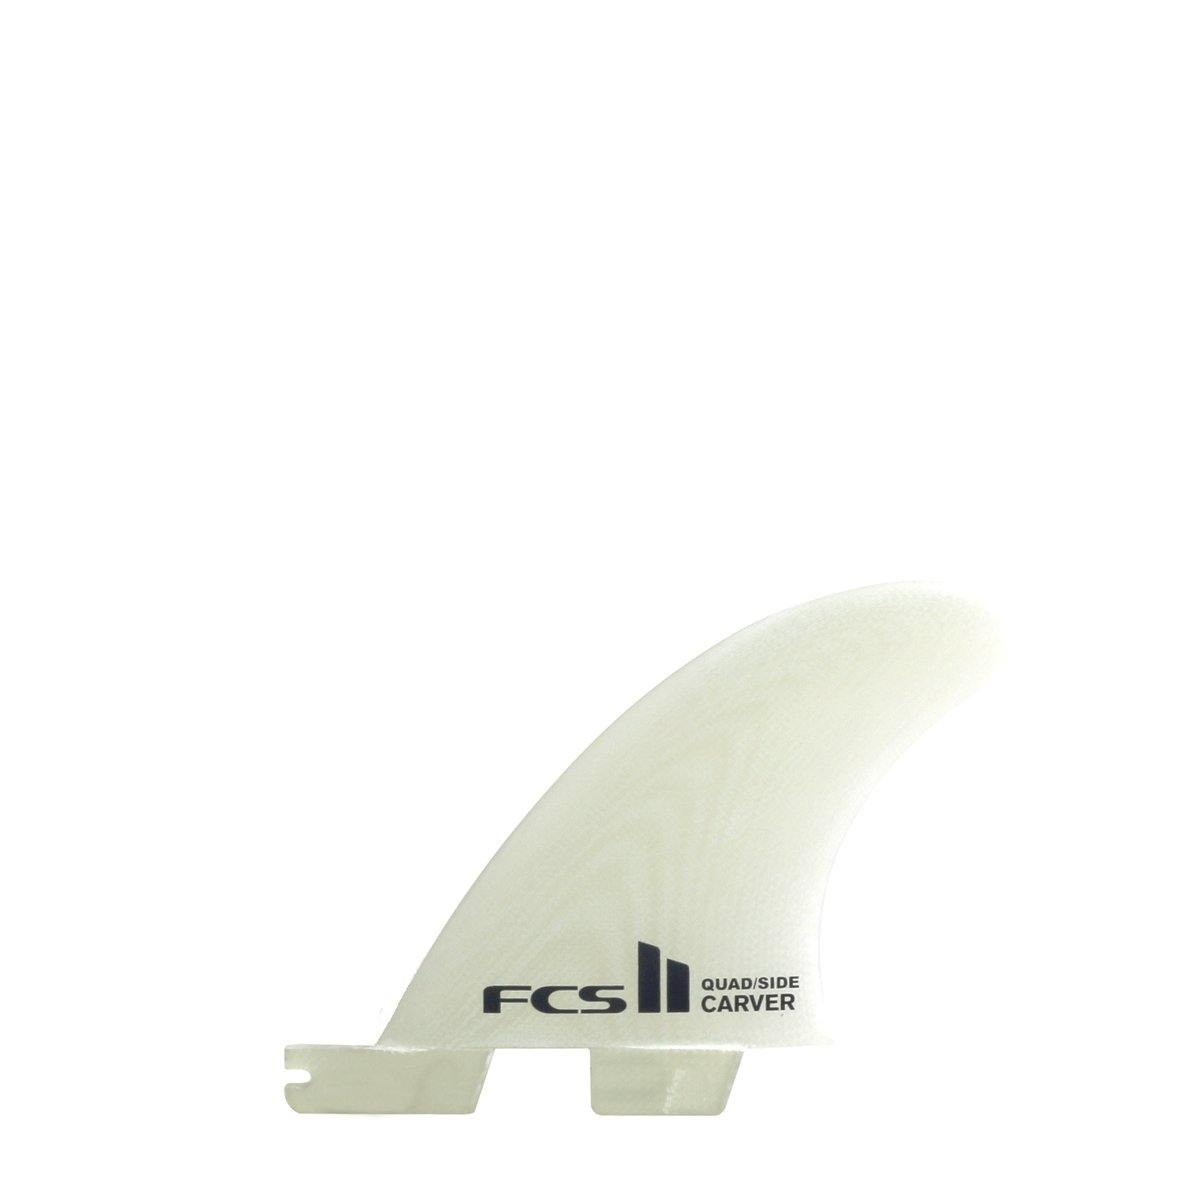 FCS II Carver Side Byte Fin Set - Performance Glass